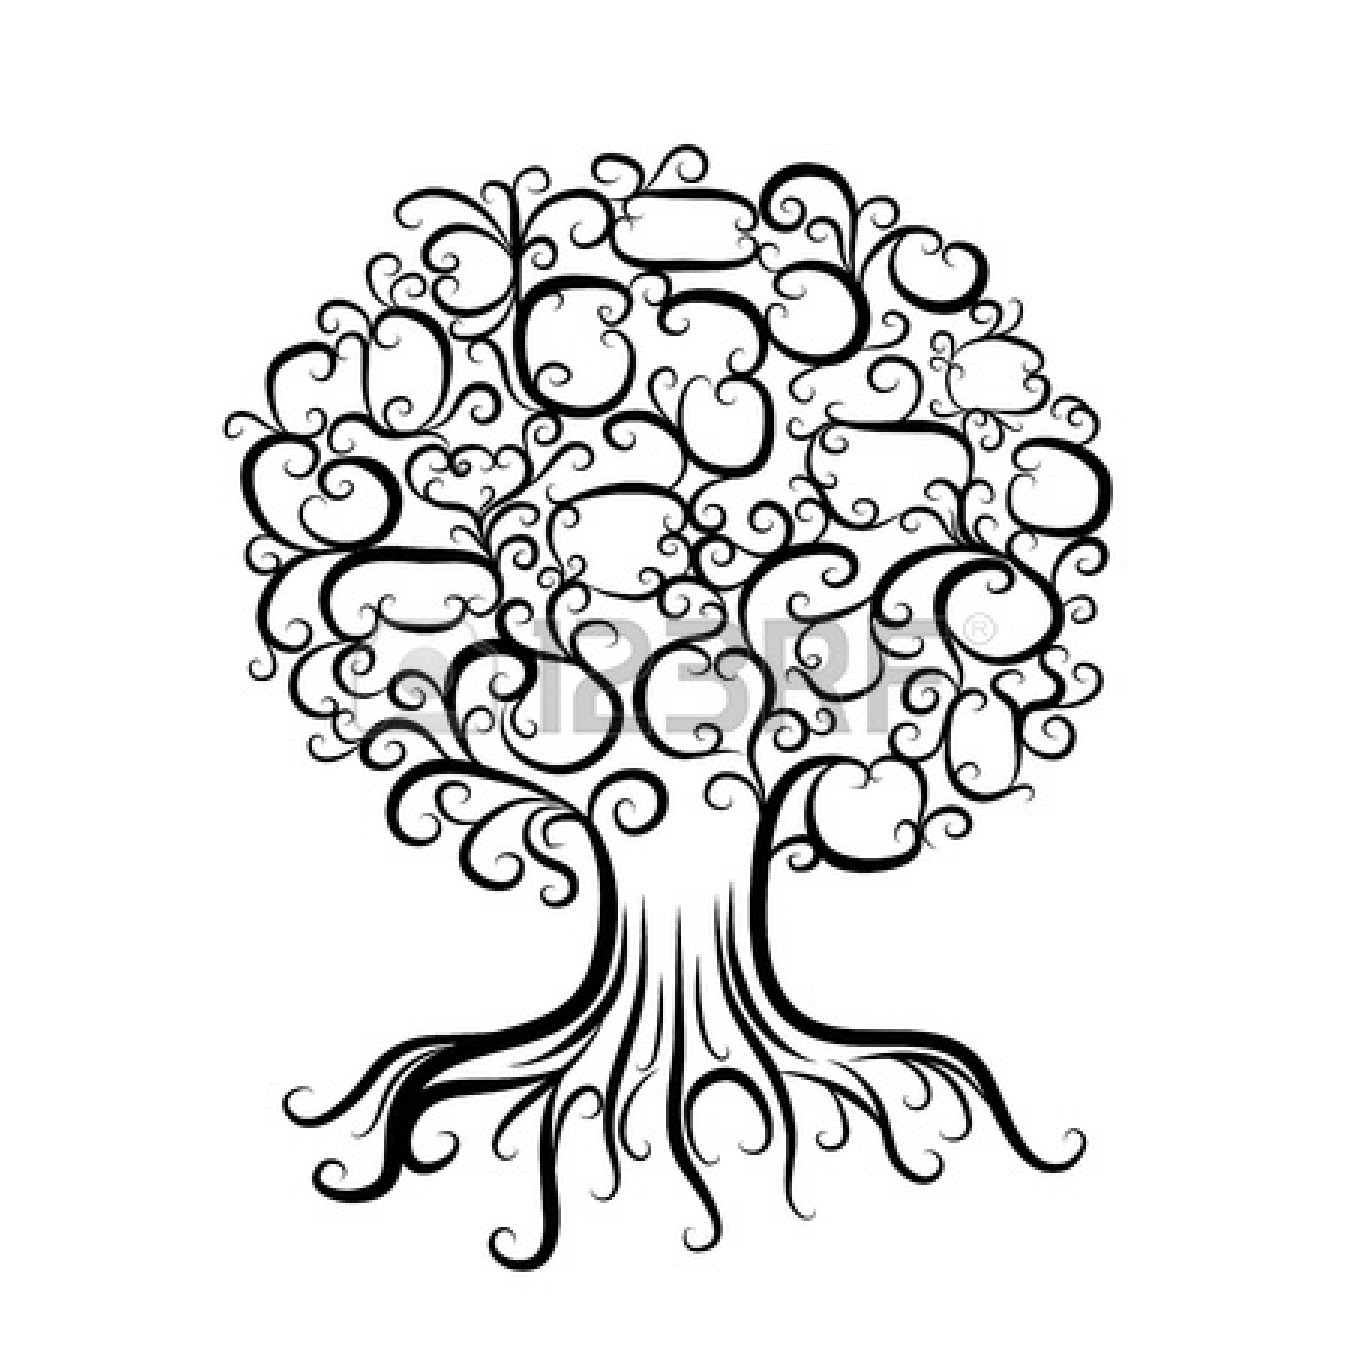 Ornamental tree with roots for | Clipart Panda - Free Clipart Images